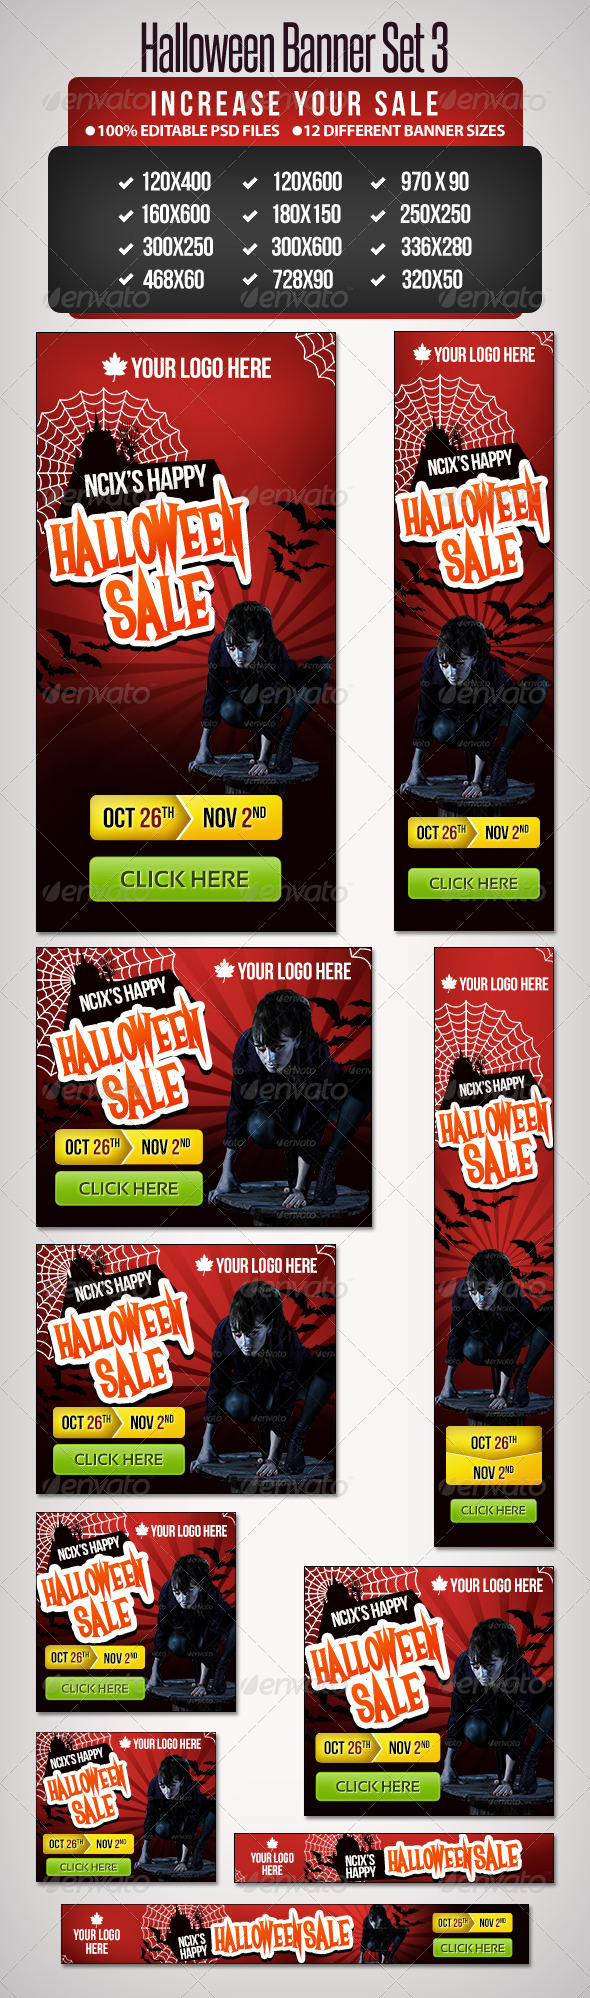 GraphicRiver Halloween Banner Set 3 12 Google Standard Sizes 5612318